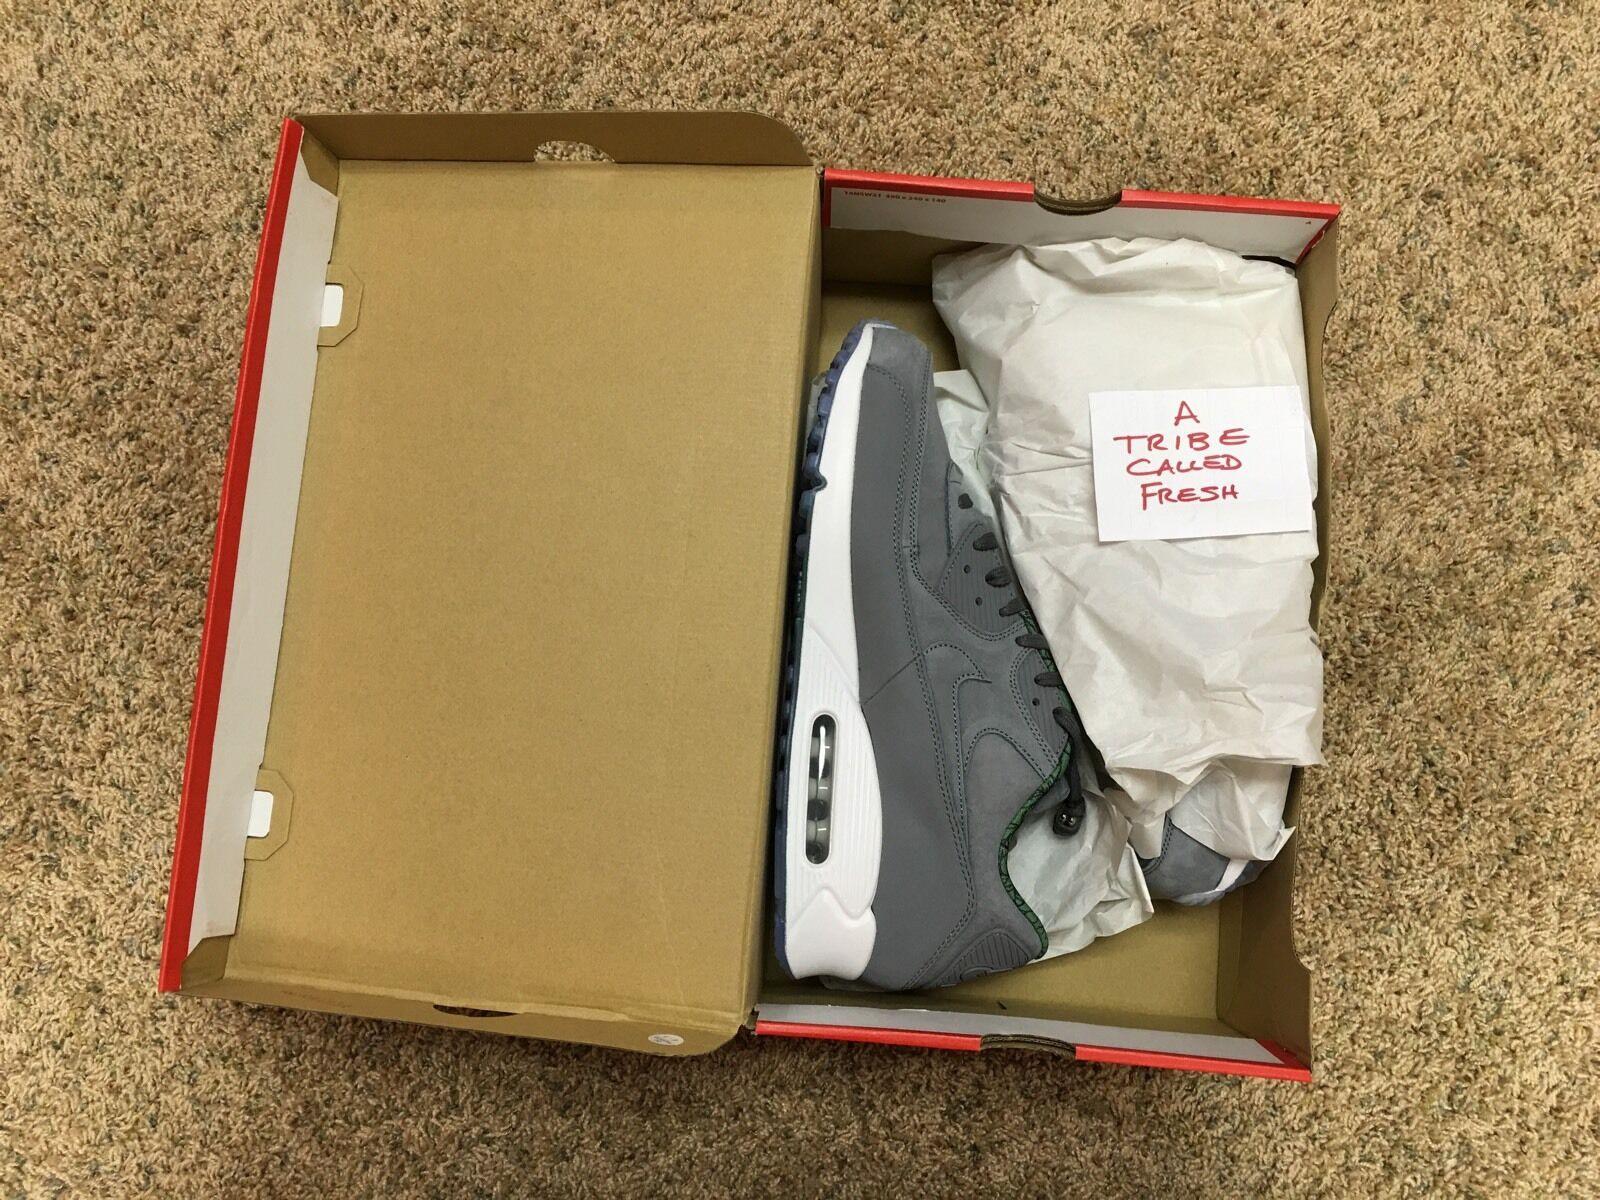 Nike Air Max 90 PRM QS Cool Grey 836302 002 CHI 312 SNKRS NIB AM90 DS QS Size 14